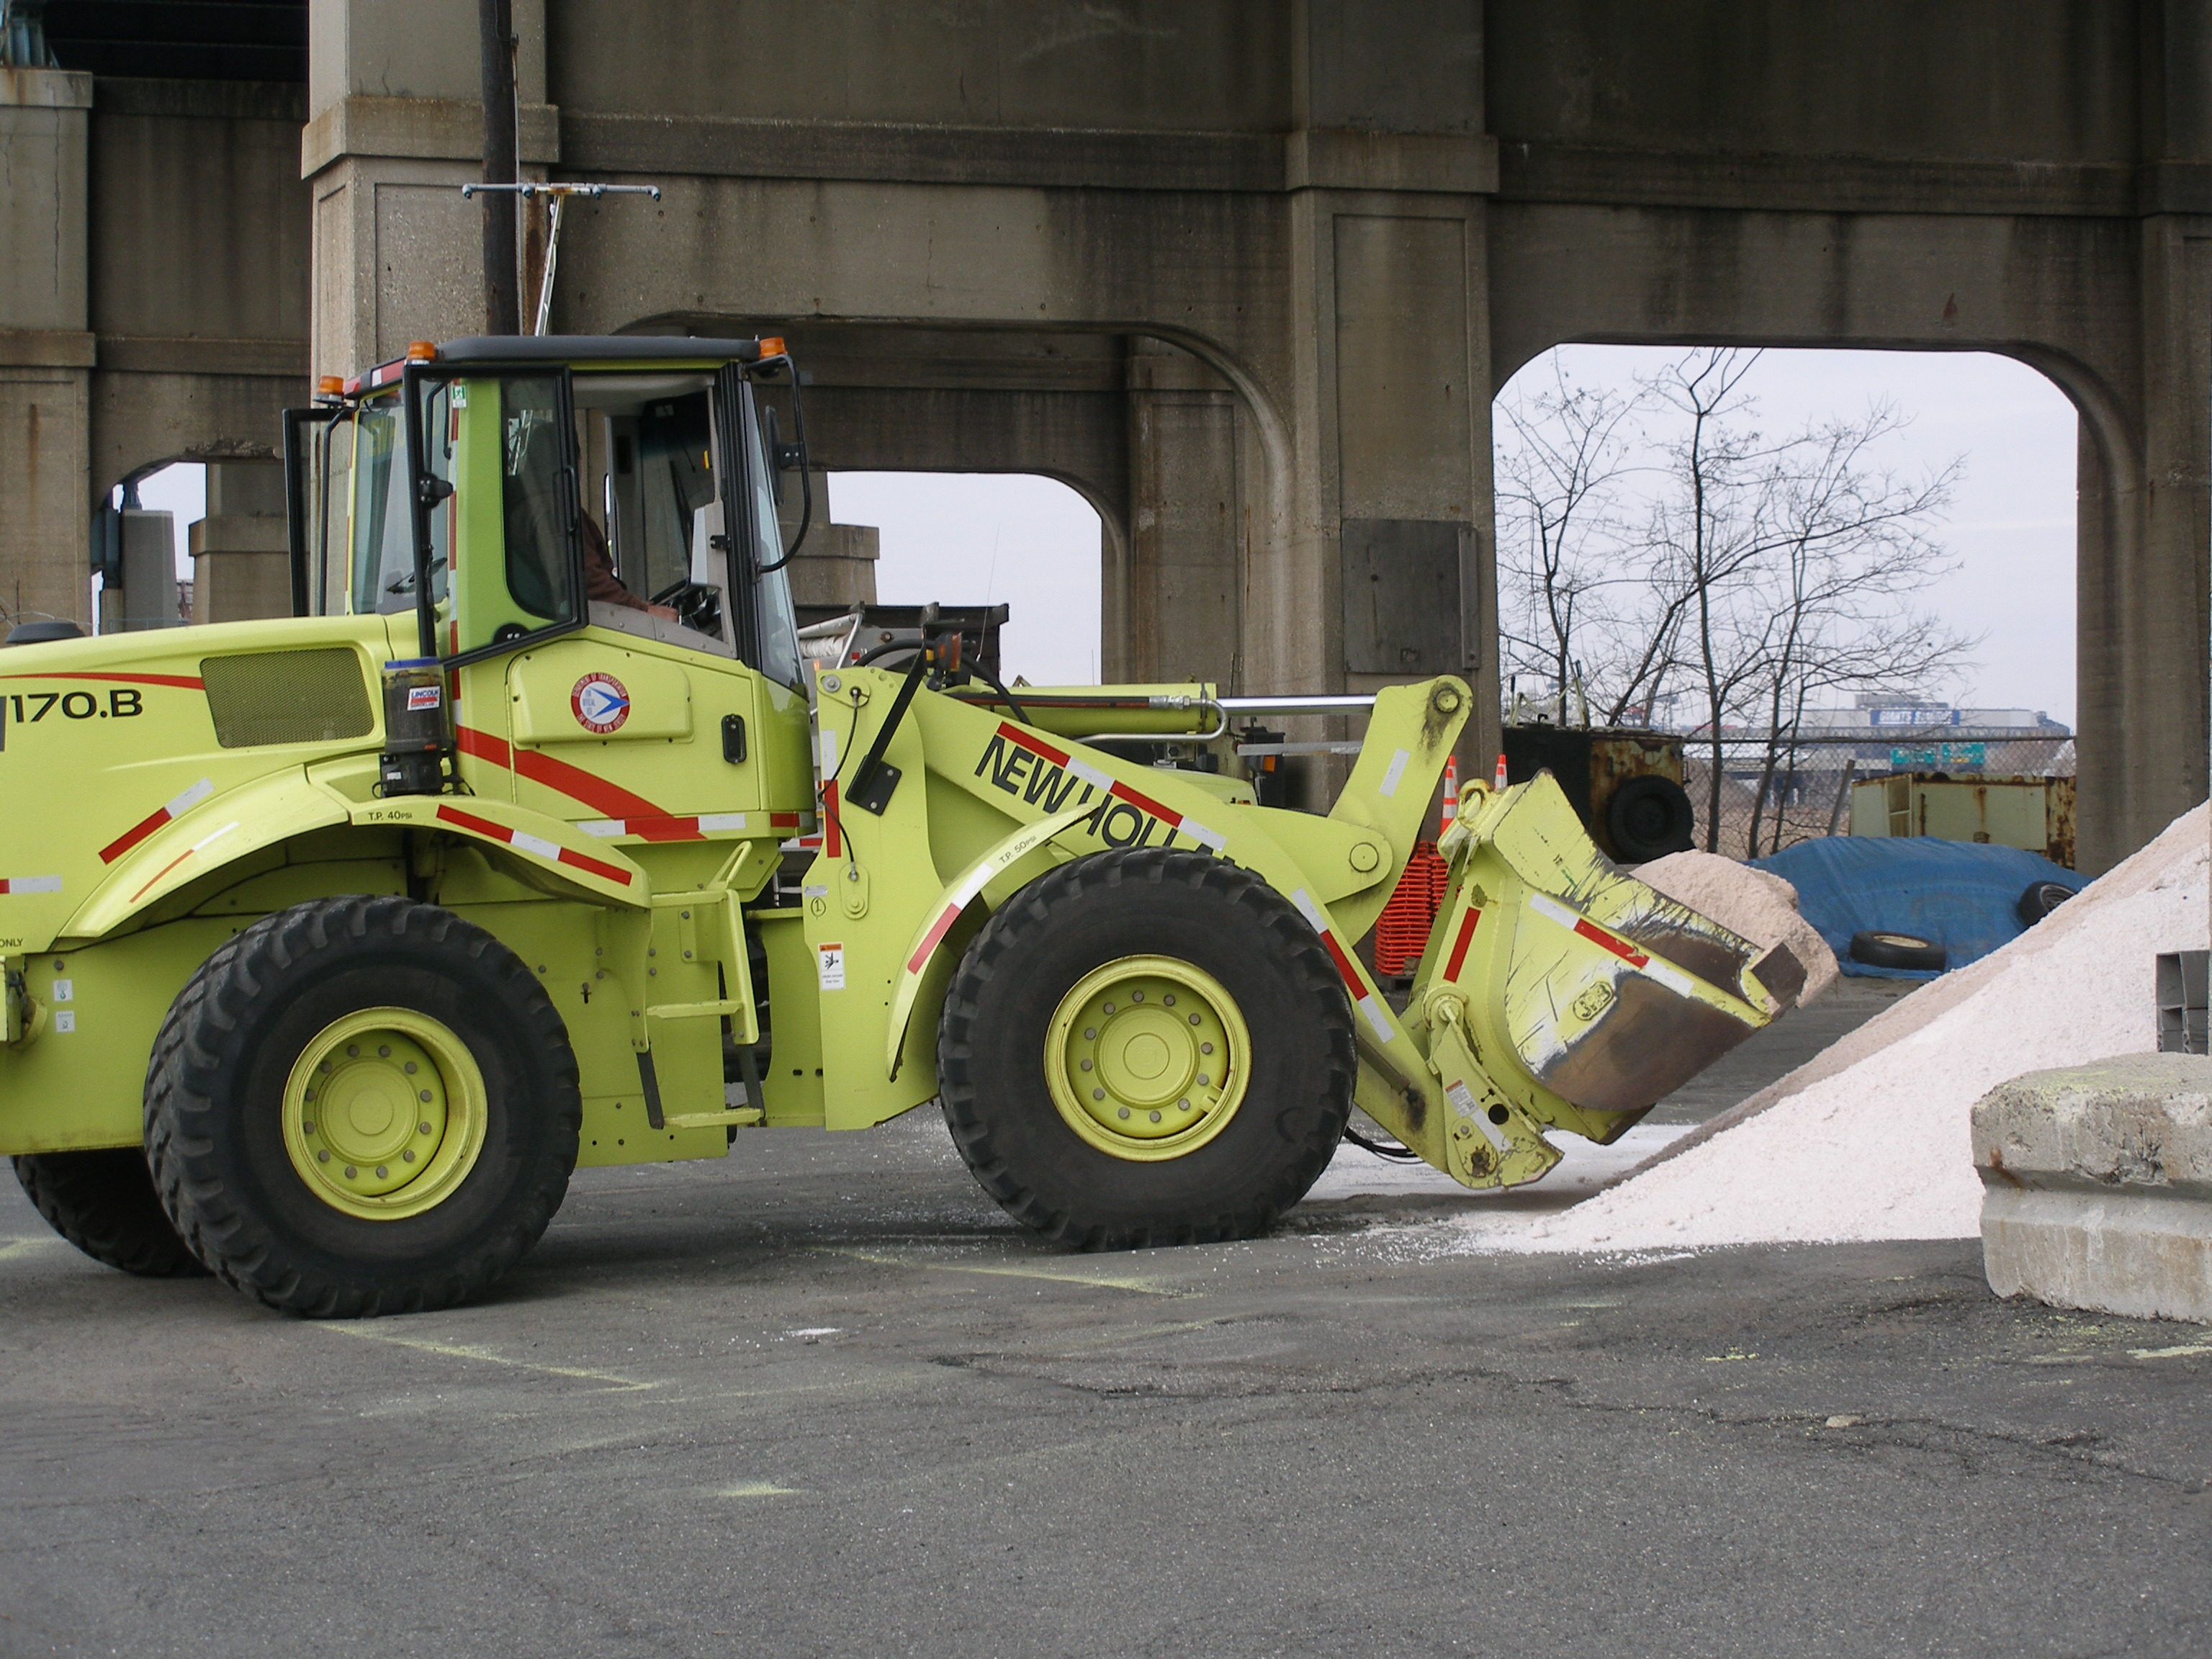 Njdot is prepared for the winter season pooptronica